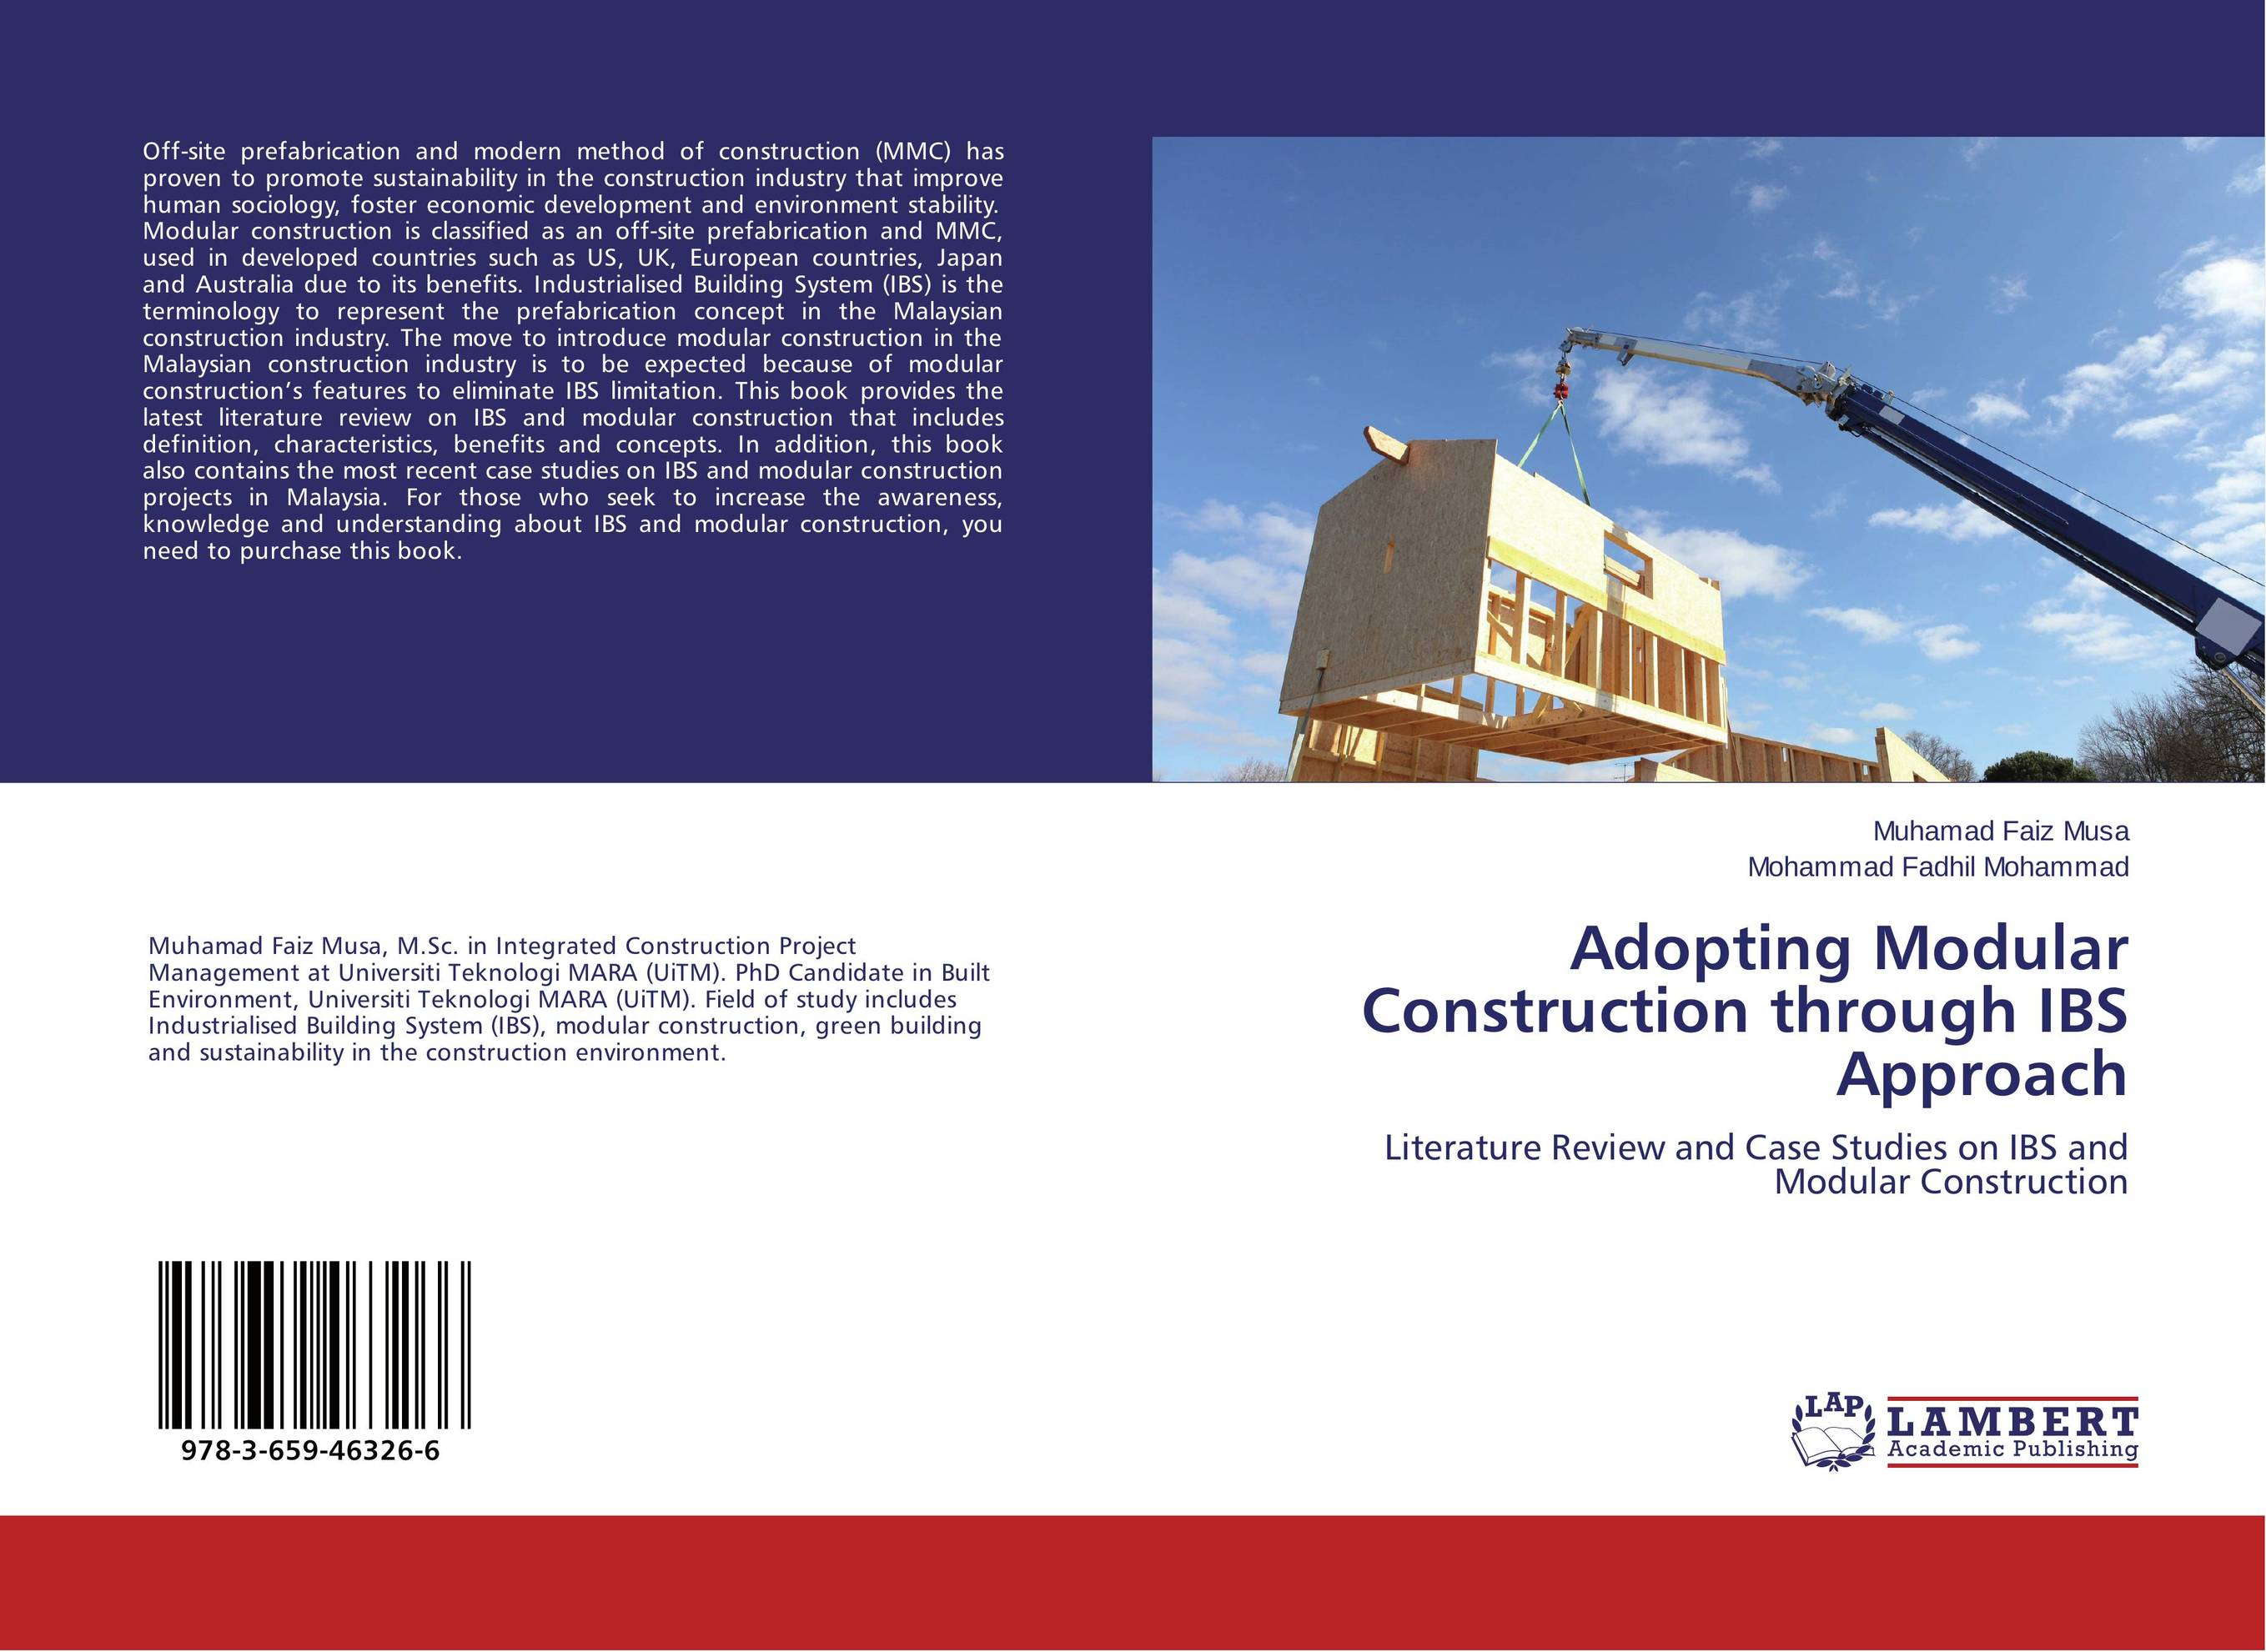 Adopting Modular Construction through IBS Approach case studies in troubled construction projects